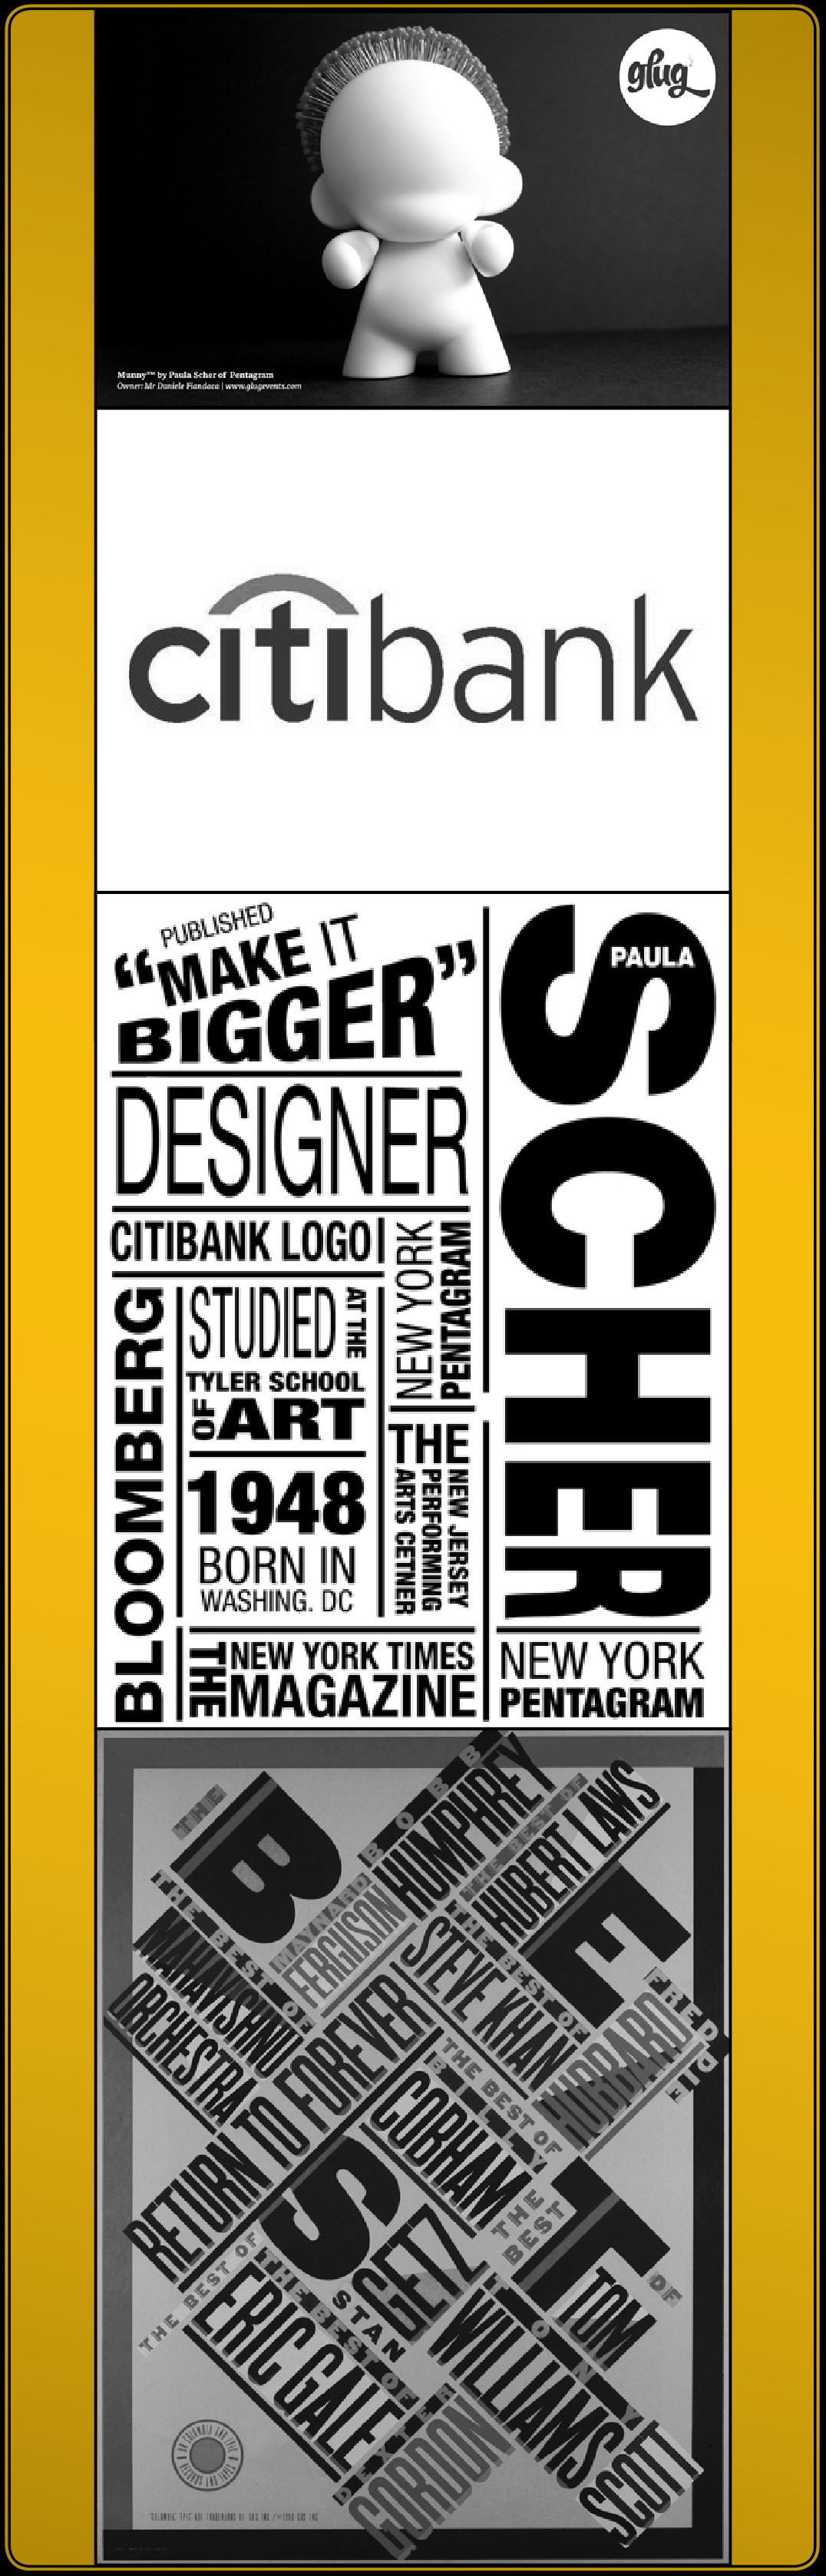 the life and work of paula scher an influential graphic designer The stuckeman school lecture series will host paula scher graphic designer scher to lecture at penn state scher is a renowned graphic designer.